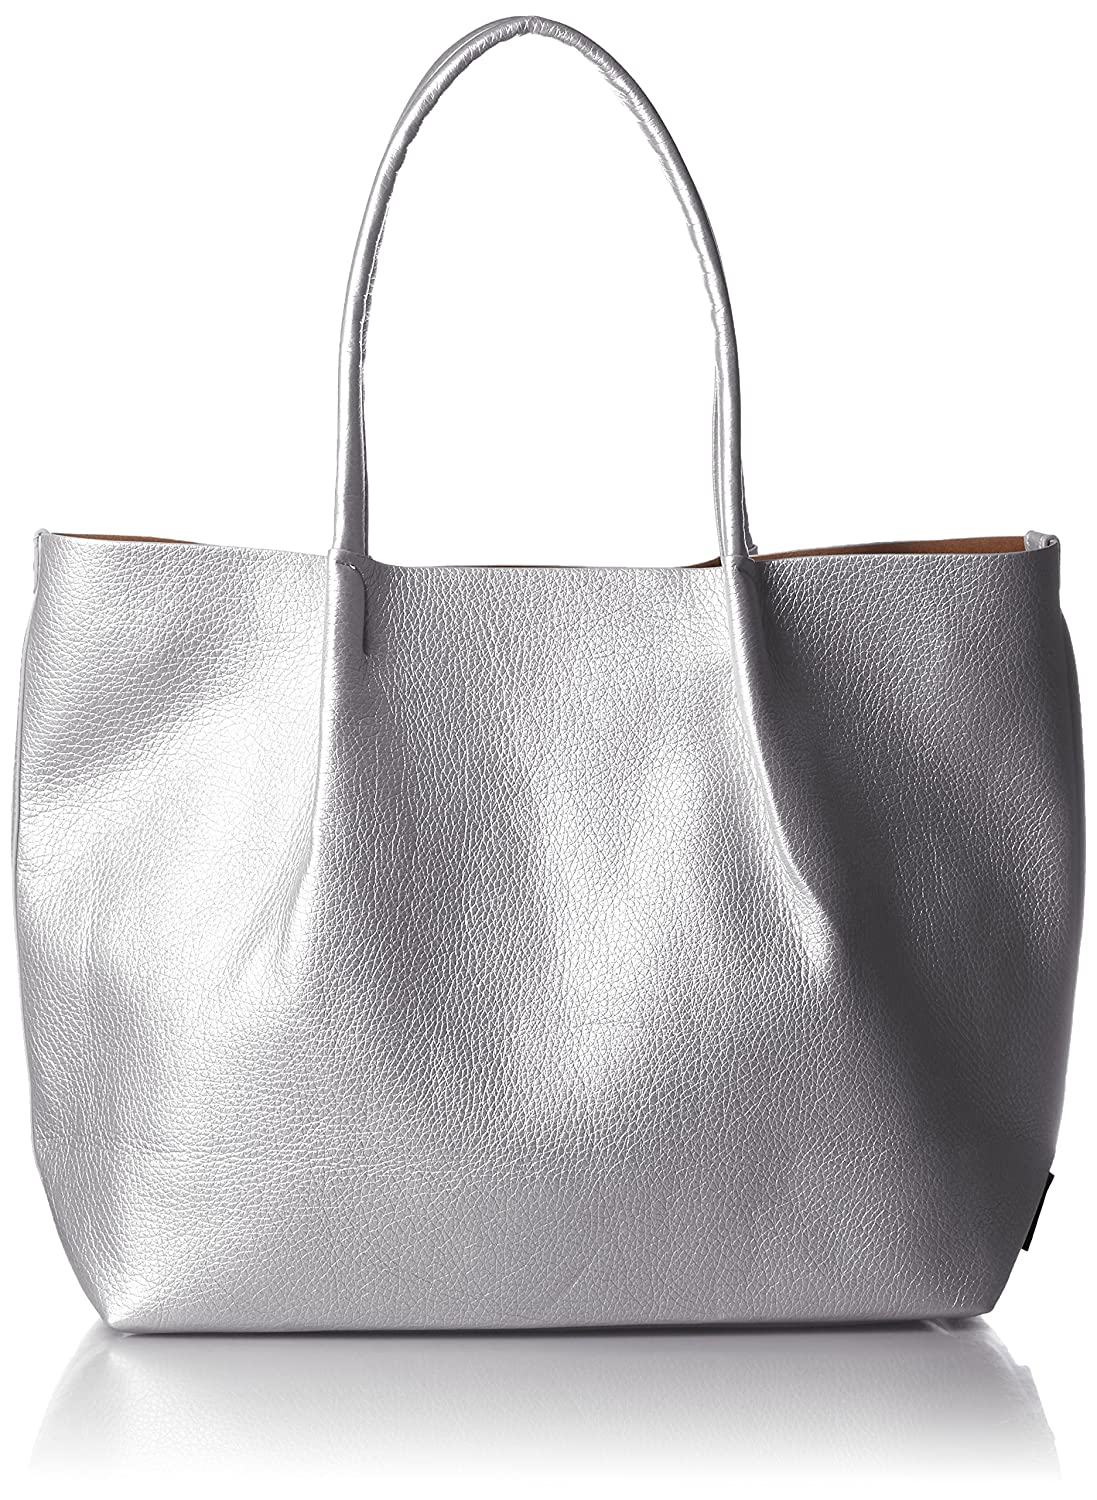 ROOTOTE Women s Synthetic Leather Totebag One Size Silver